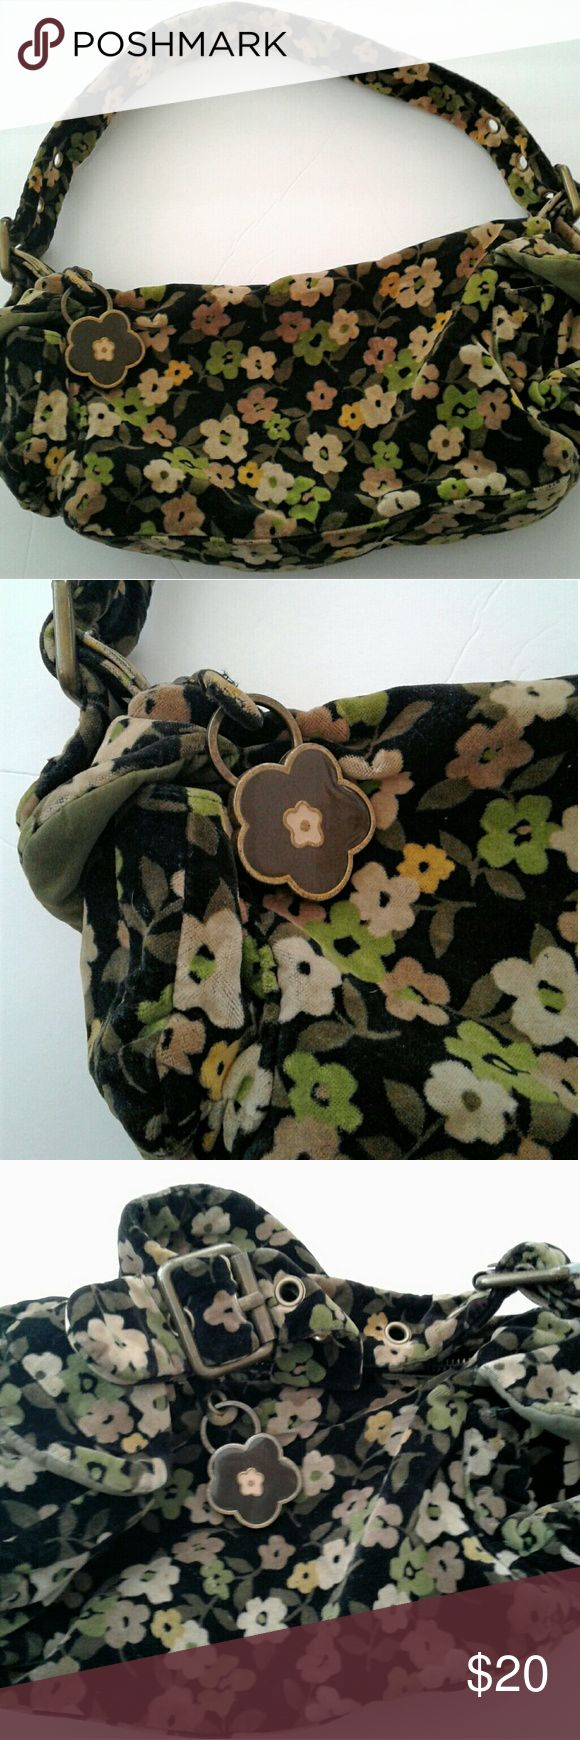 GAP Ladies Shoulder Bag,  Ladies Floral Purse Gap shouler bag,  with adjustable strap...  In great condition,  very clean on the inside and outside...  Velvet feel material 2 side pockets Zipper closure 1 pocket on the inside Sturdy hardware  15 inches long(flat lay) 7 inches tall (standing) GAP Bags Shoulder Bags